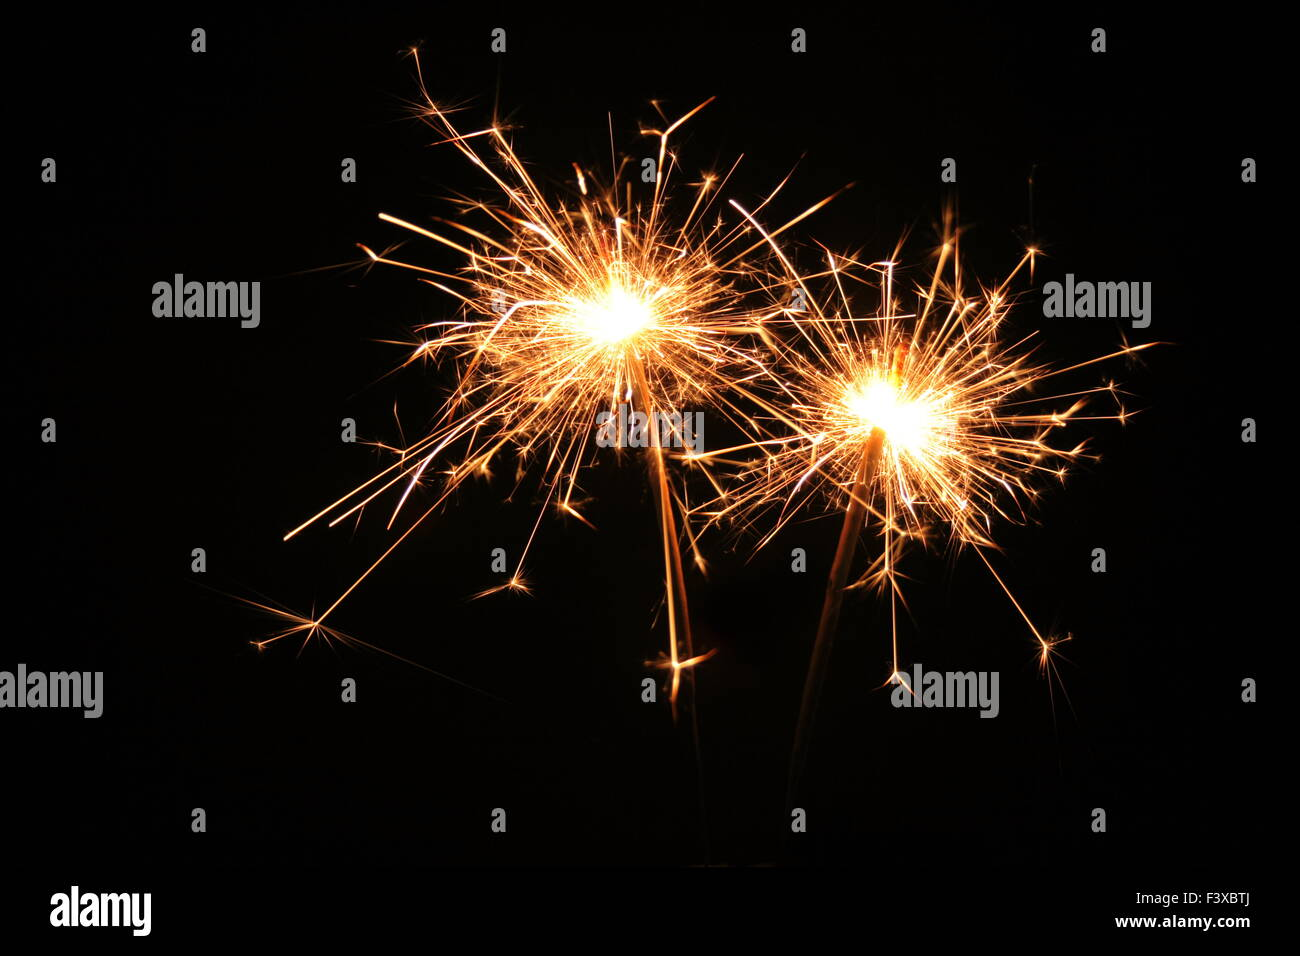 Two Sparklers - Stock Image